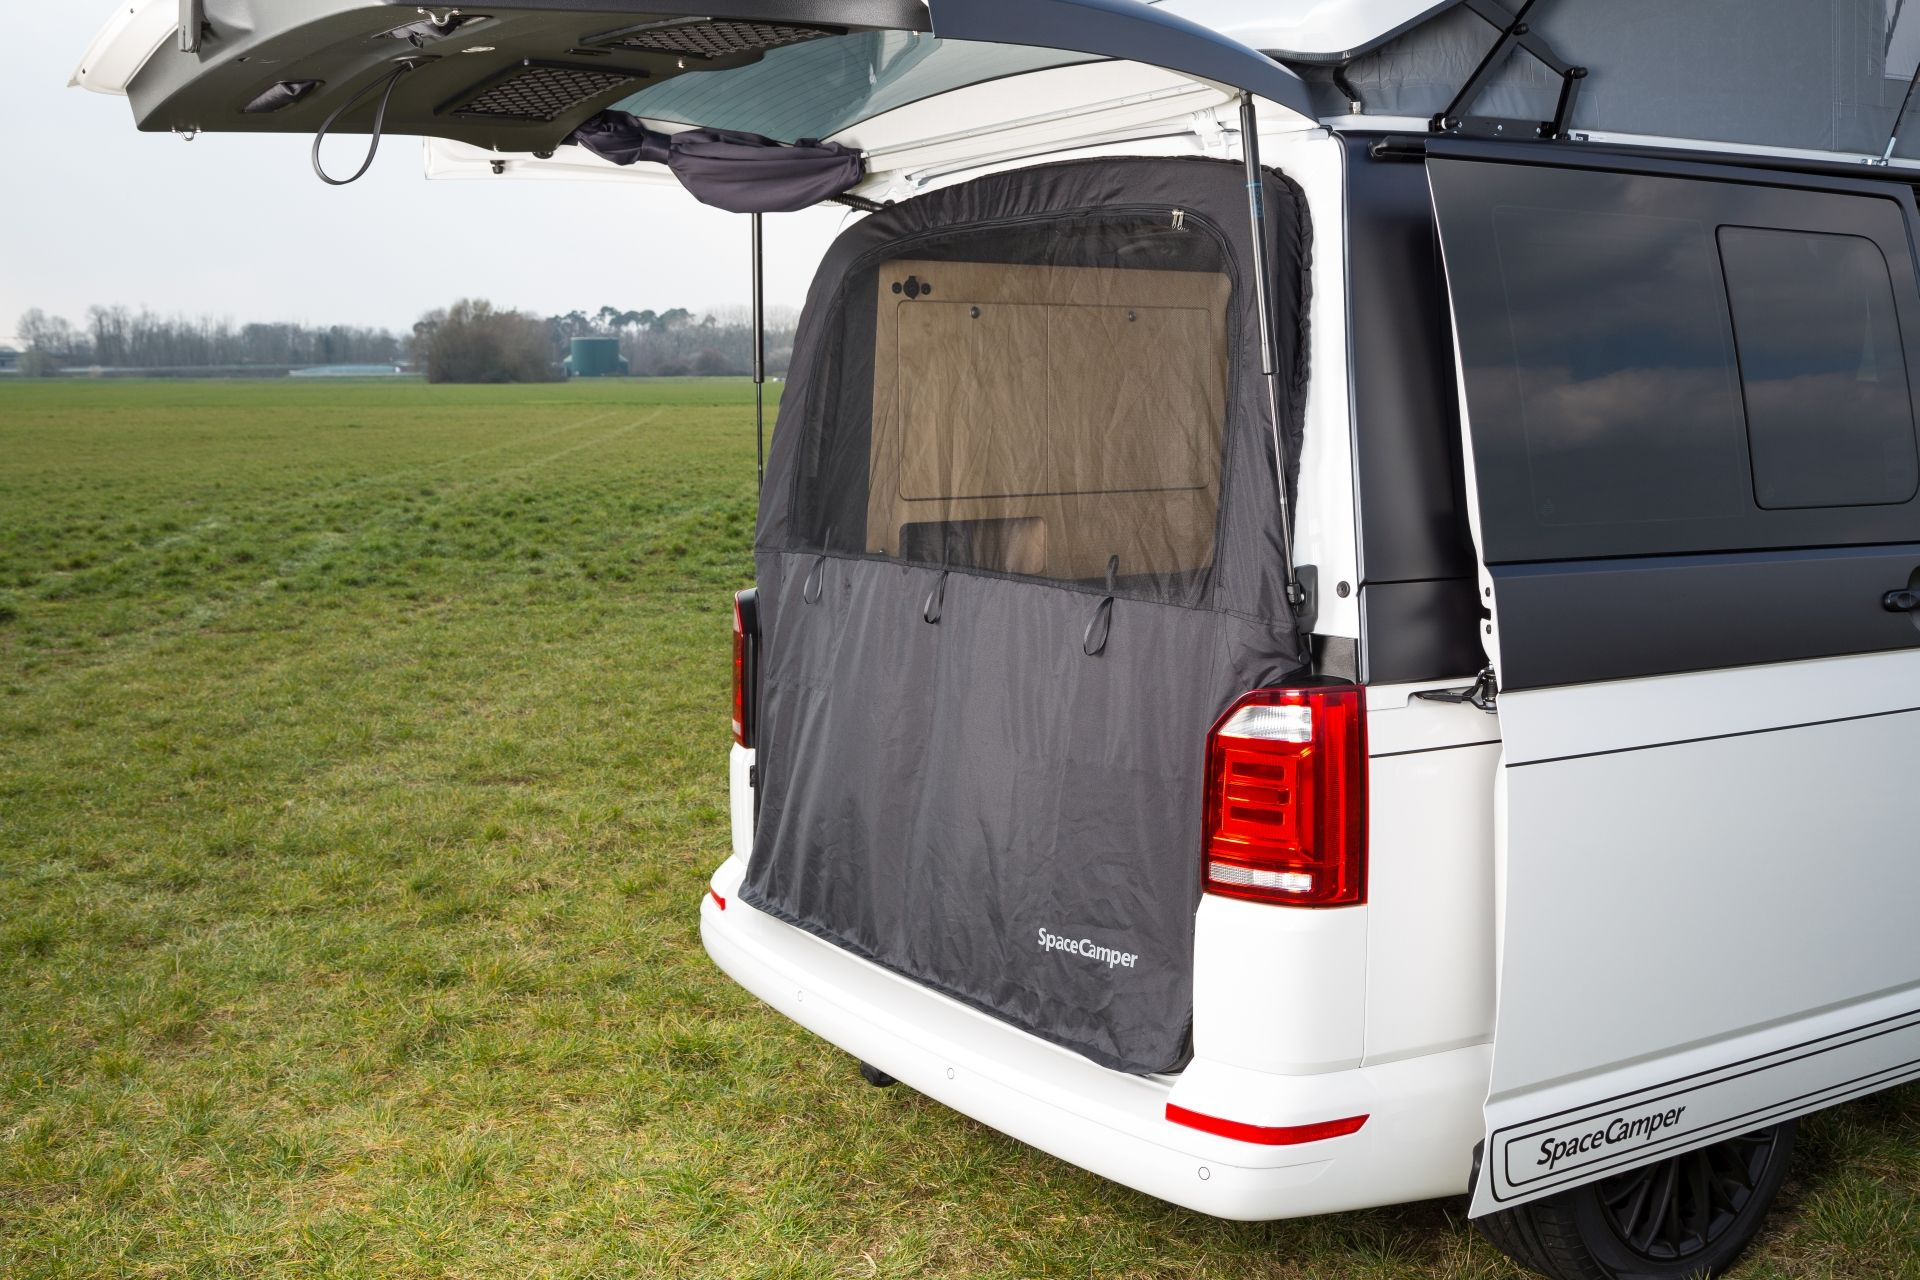 moskitonetz der spacecamper vw t6 camping ausbau reisemobil wohnmobil campingbus und. Black Bedroom Furniture Sets. Home Design Ideas